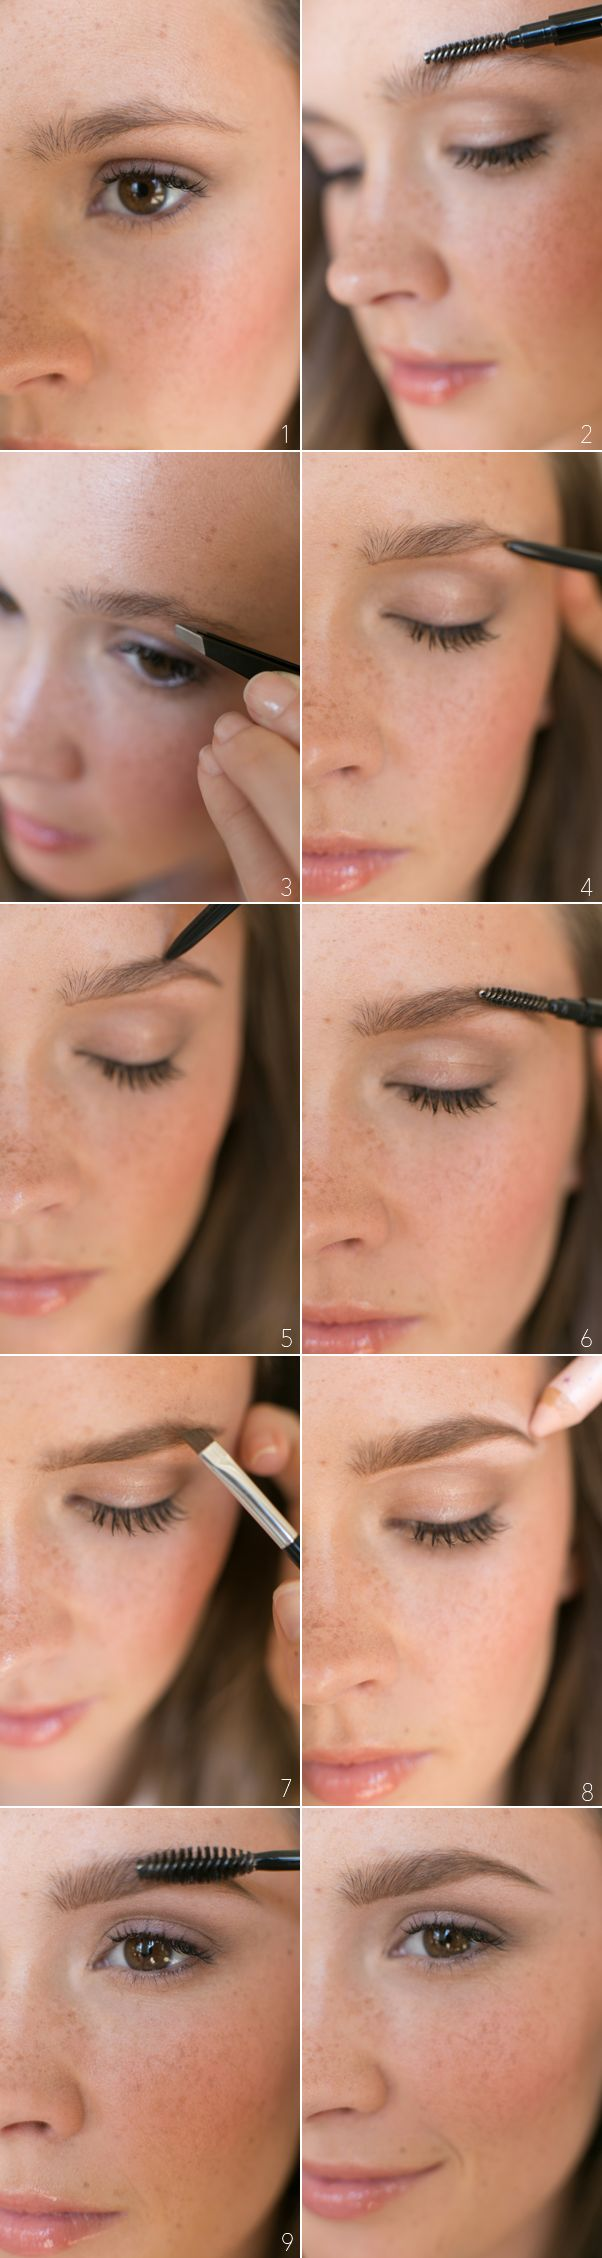 Natural Brow Beauty Tutorial via oncewed.com//step by step with pictures. looks easy to do